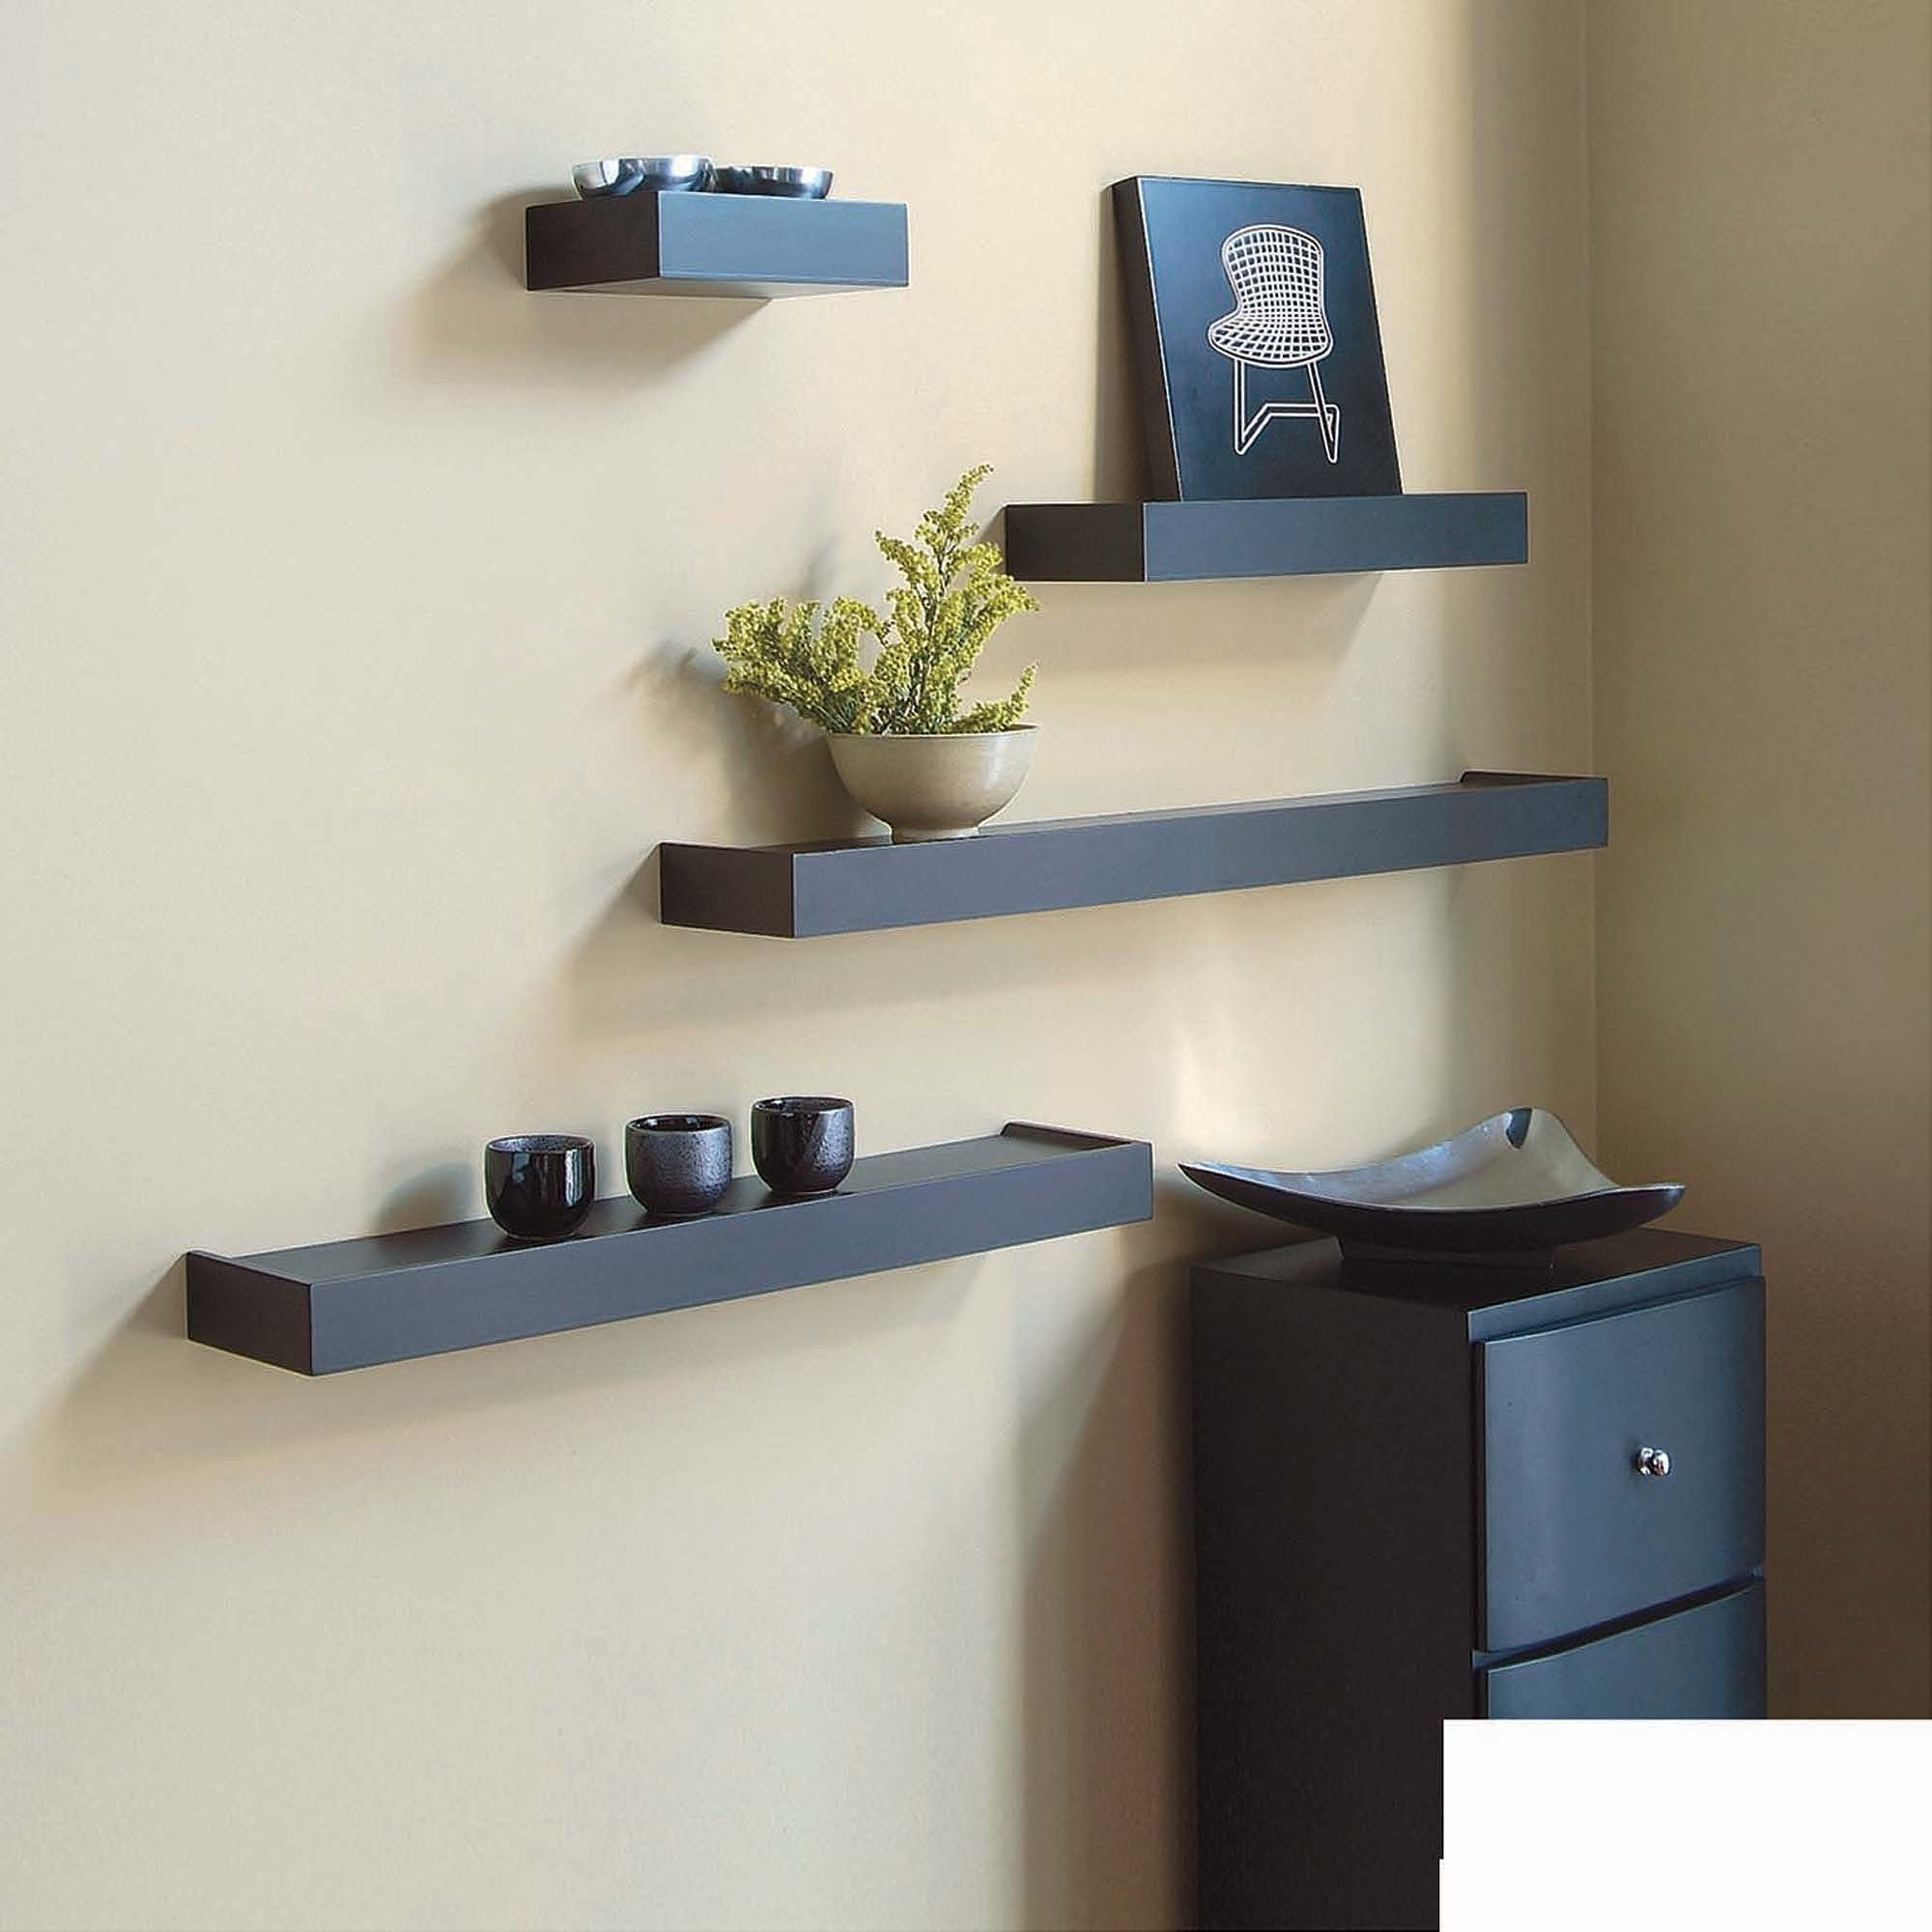 kiera grace vertigo set black wall shelves floating shelf rolling vinyl tile skinny bathroom storage gap between kitchen units mounts for canadian tire shelving decorative holders